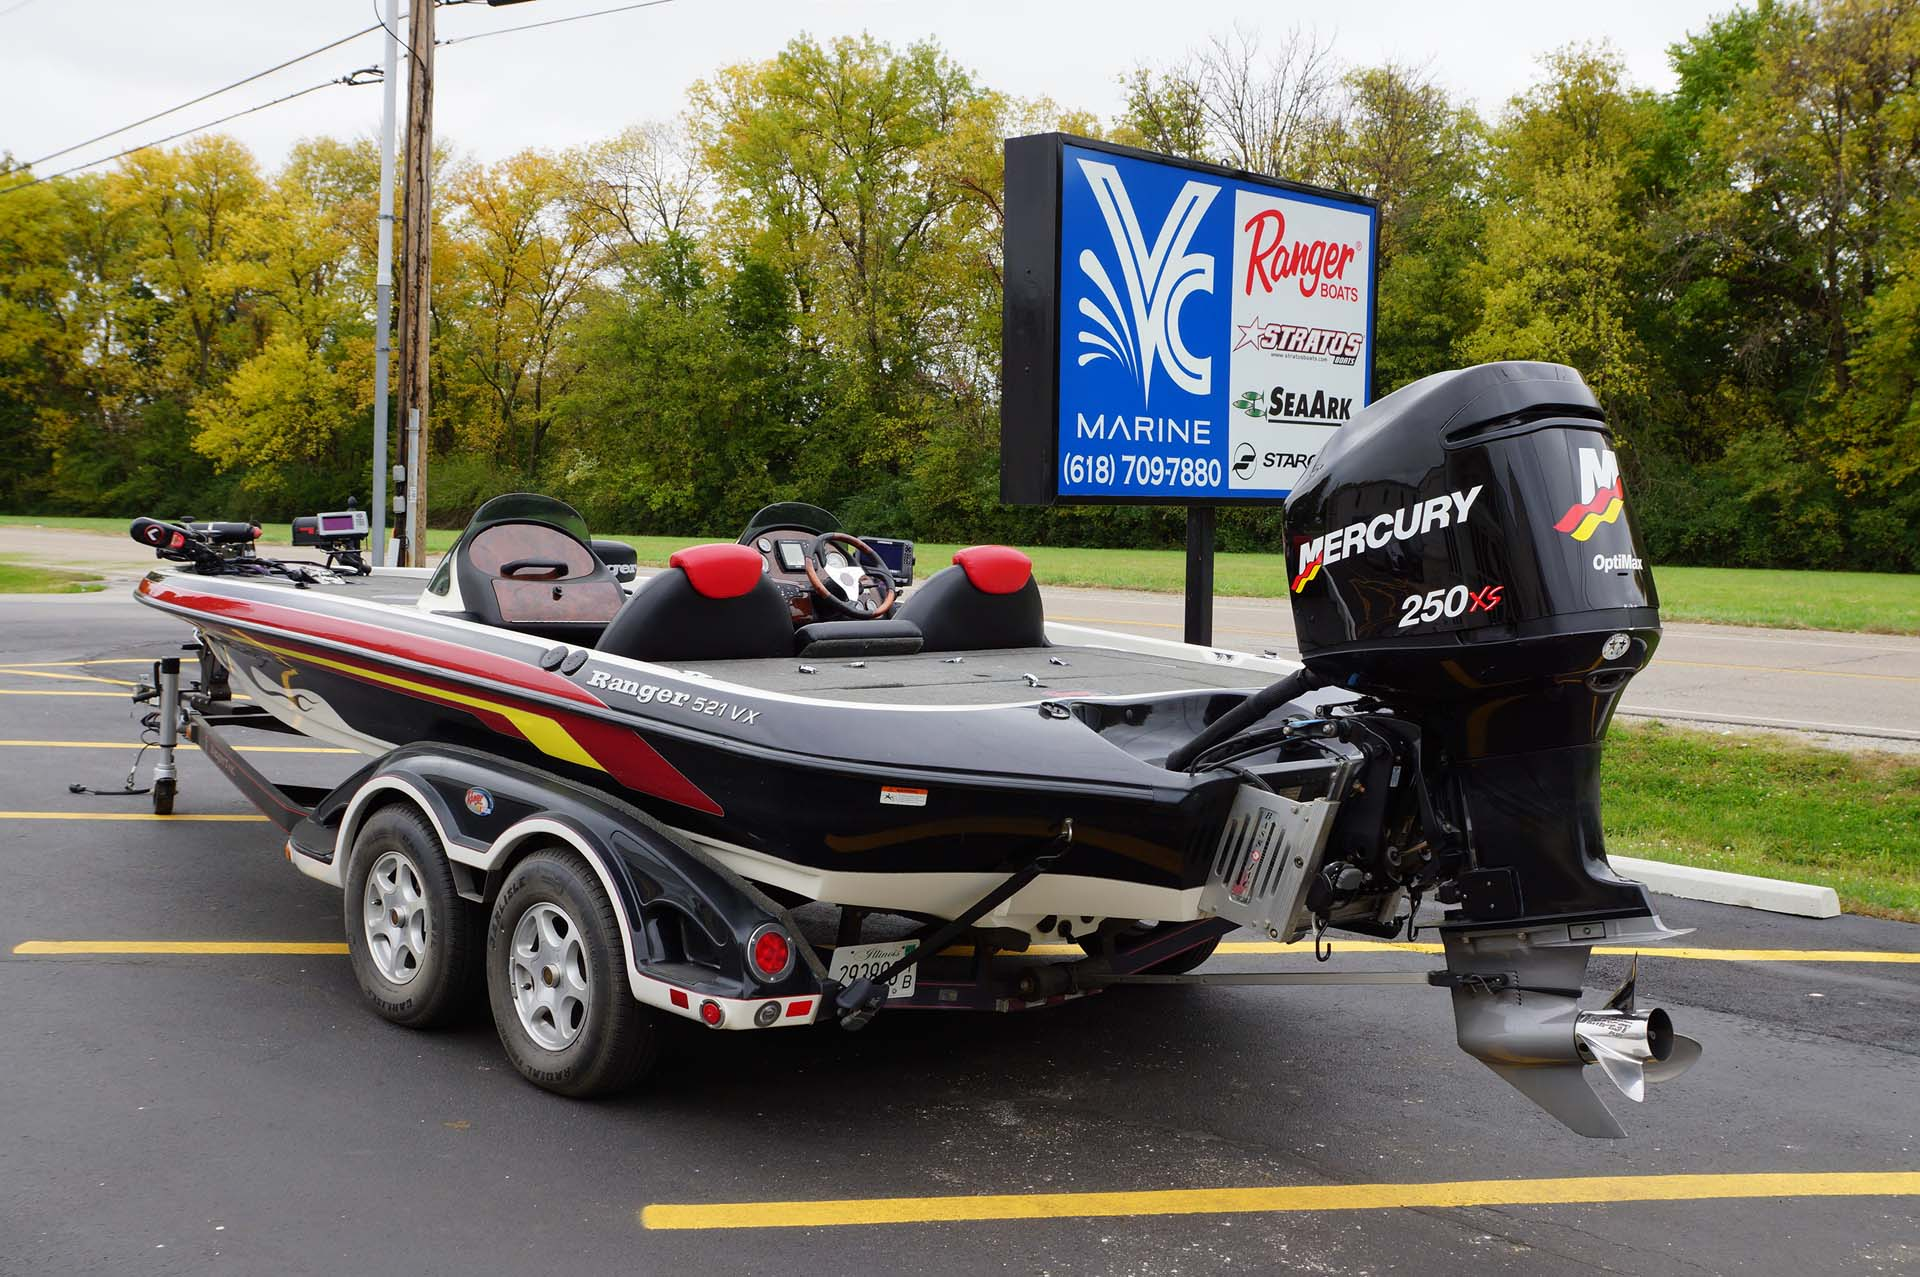 2004 Ranger 521 Vx W Mercury 250 Optimax Pro Xs Amp Trailer